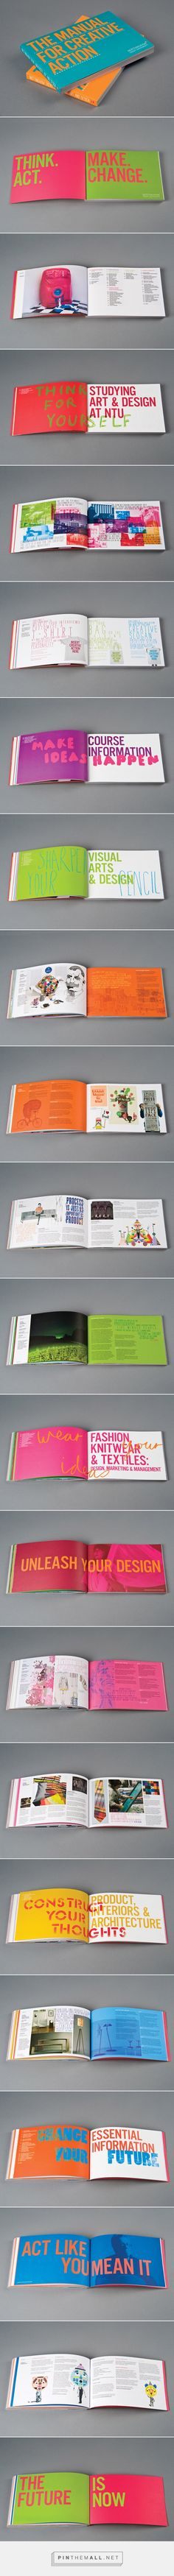 NTU Art & Design Book 10/11 by Andrew Townsend